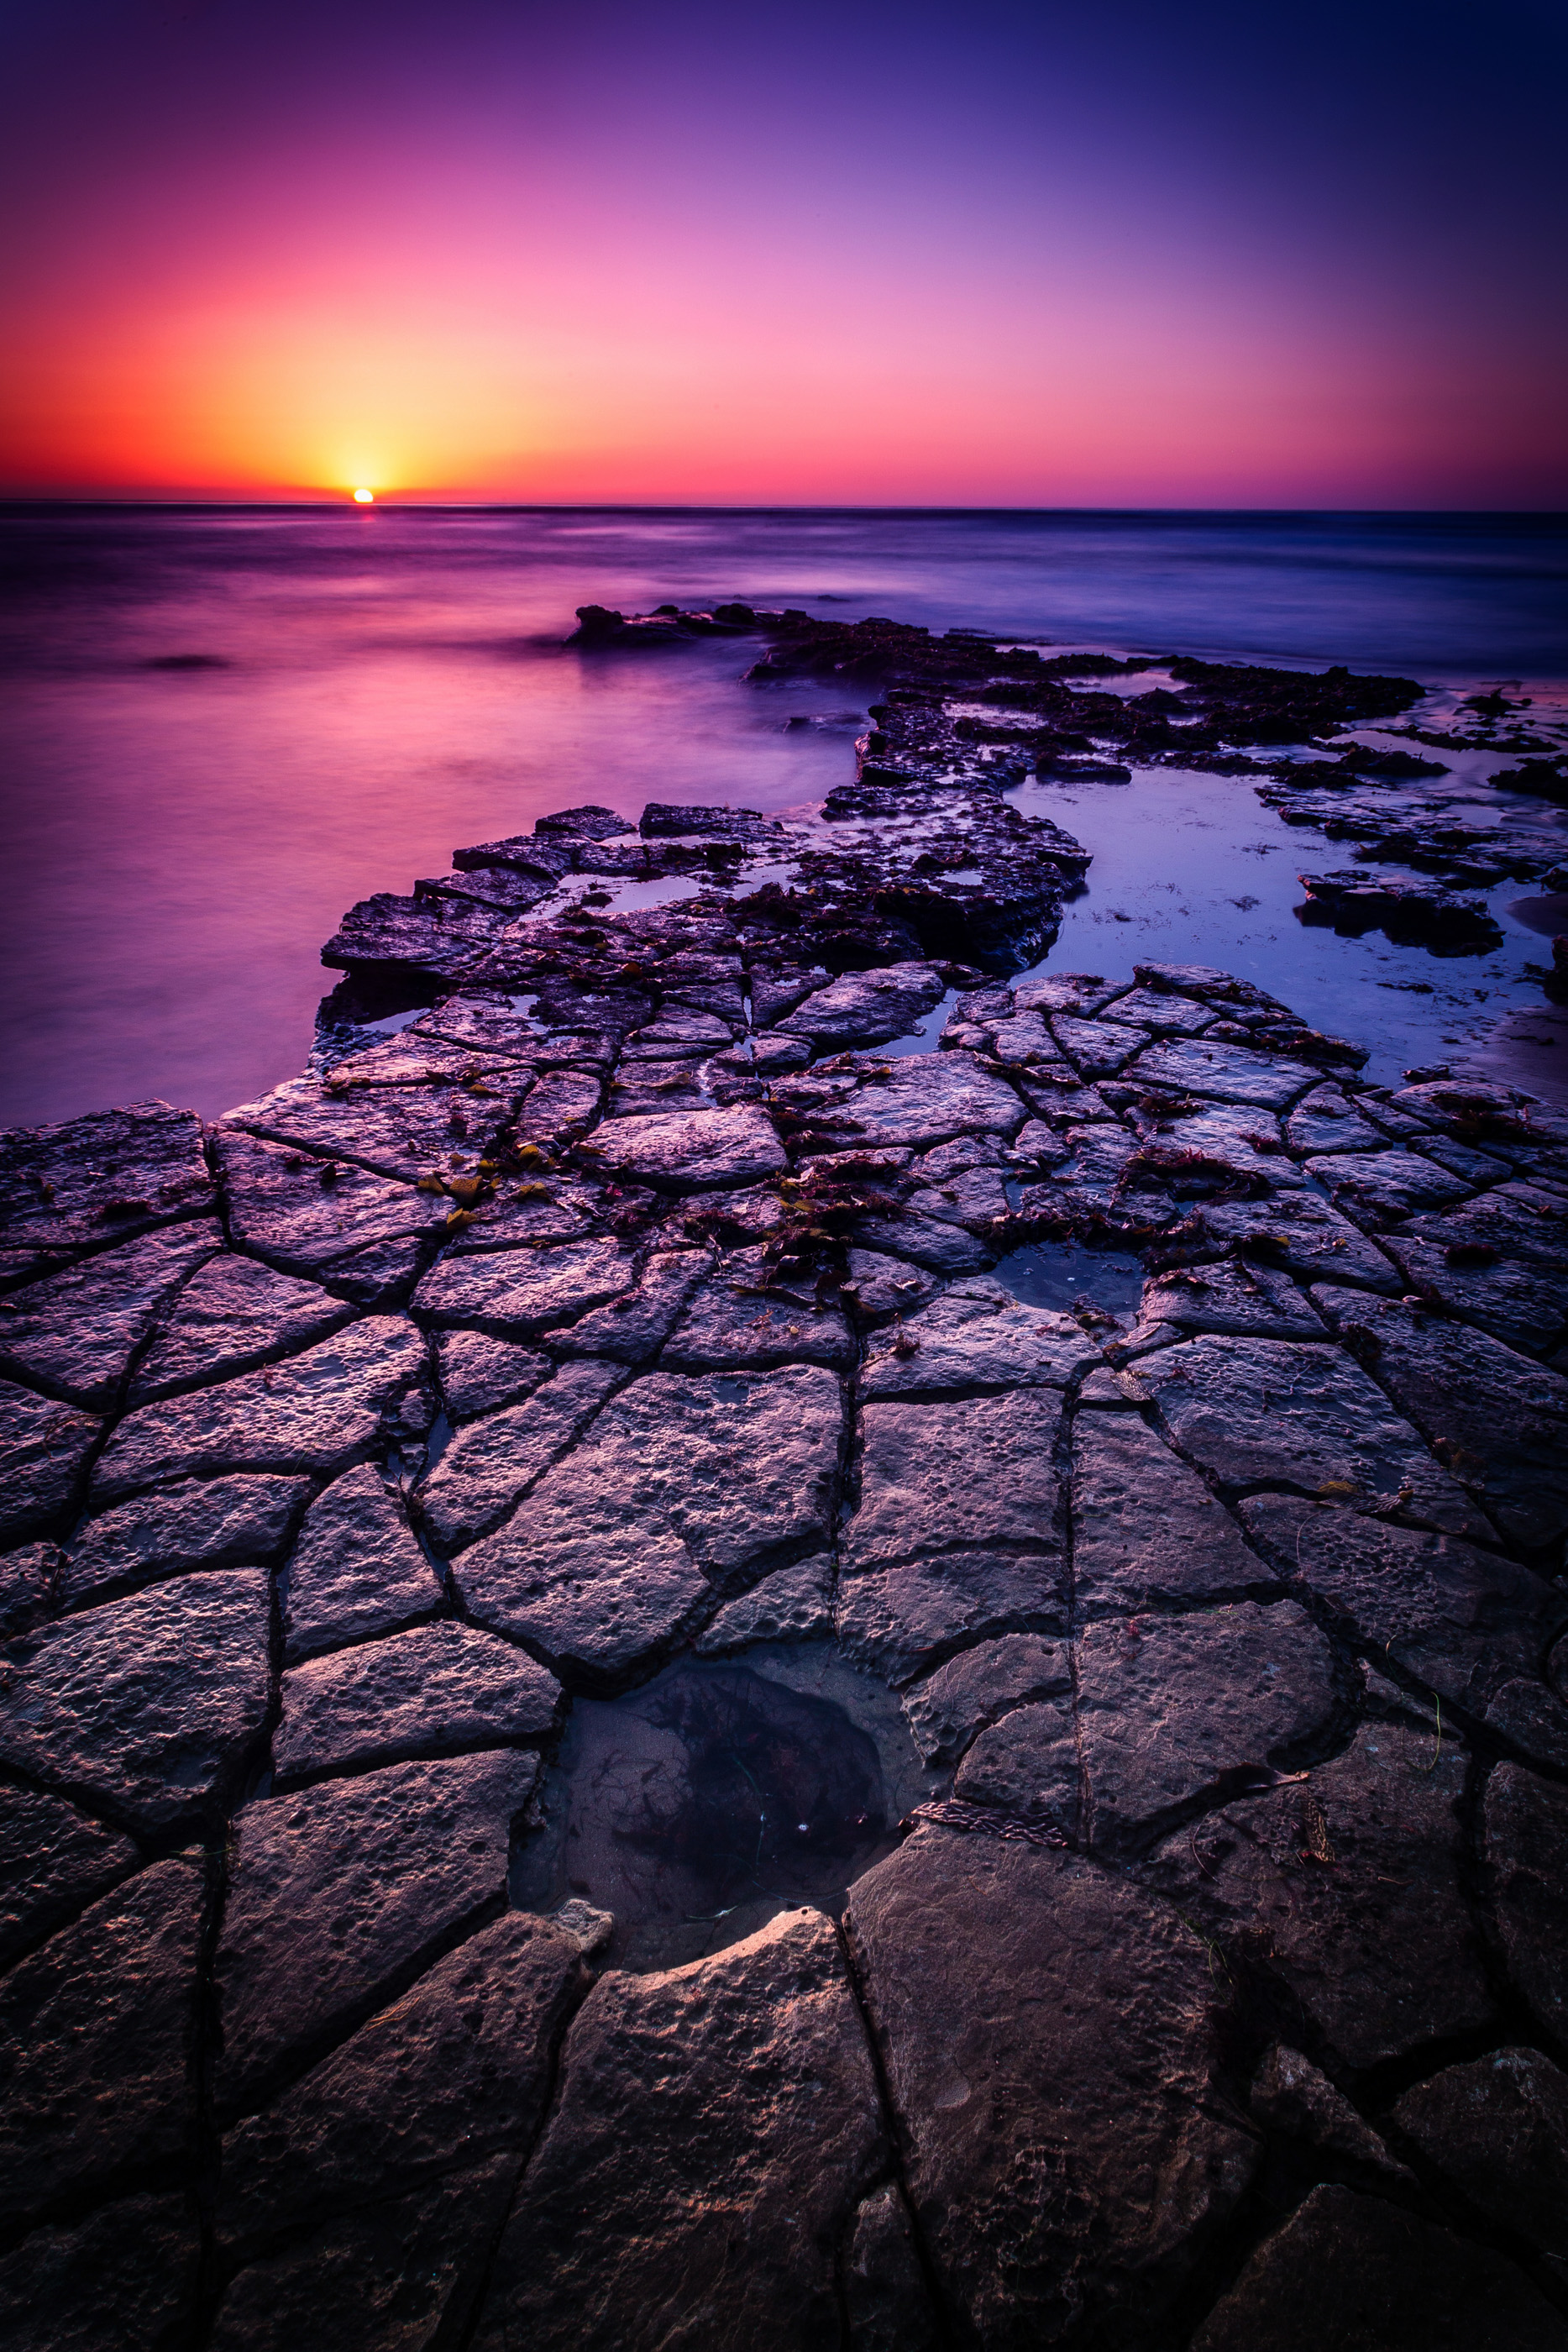 The orange sun begins to dip below the pacific horizon as it casts its last glow on the puzzle at Sunset Cliffs in Point Loma, near San Diego California.